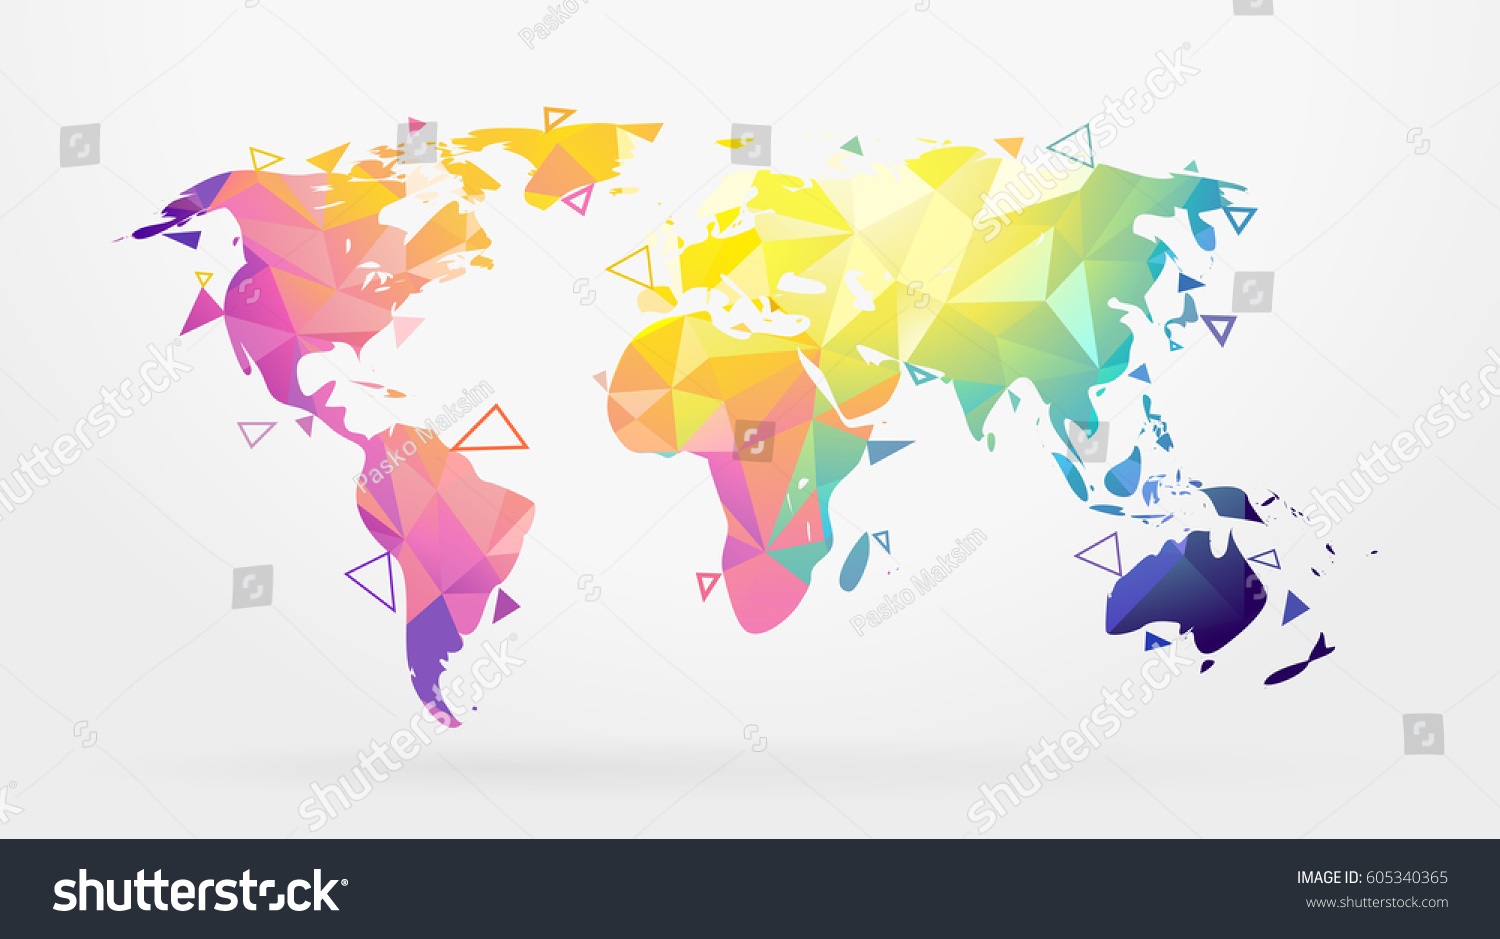 World map abstract geometric shapes low vectores en stock 605340365 world map abstract geometric shapes low poly graphic vector illustration gumiabroncs Image collections